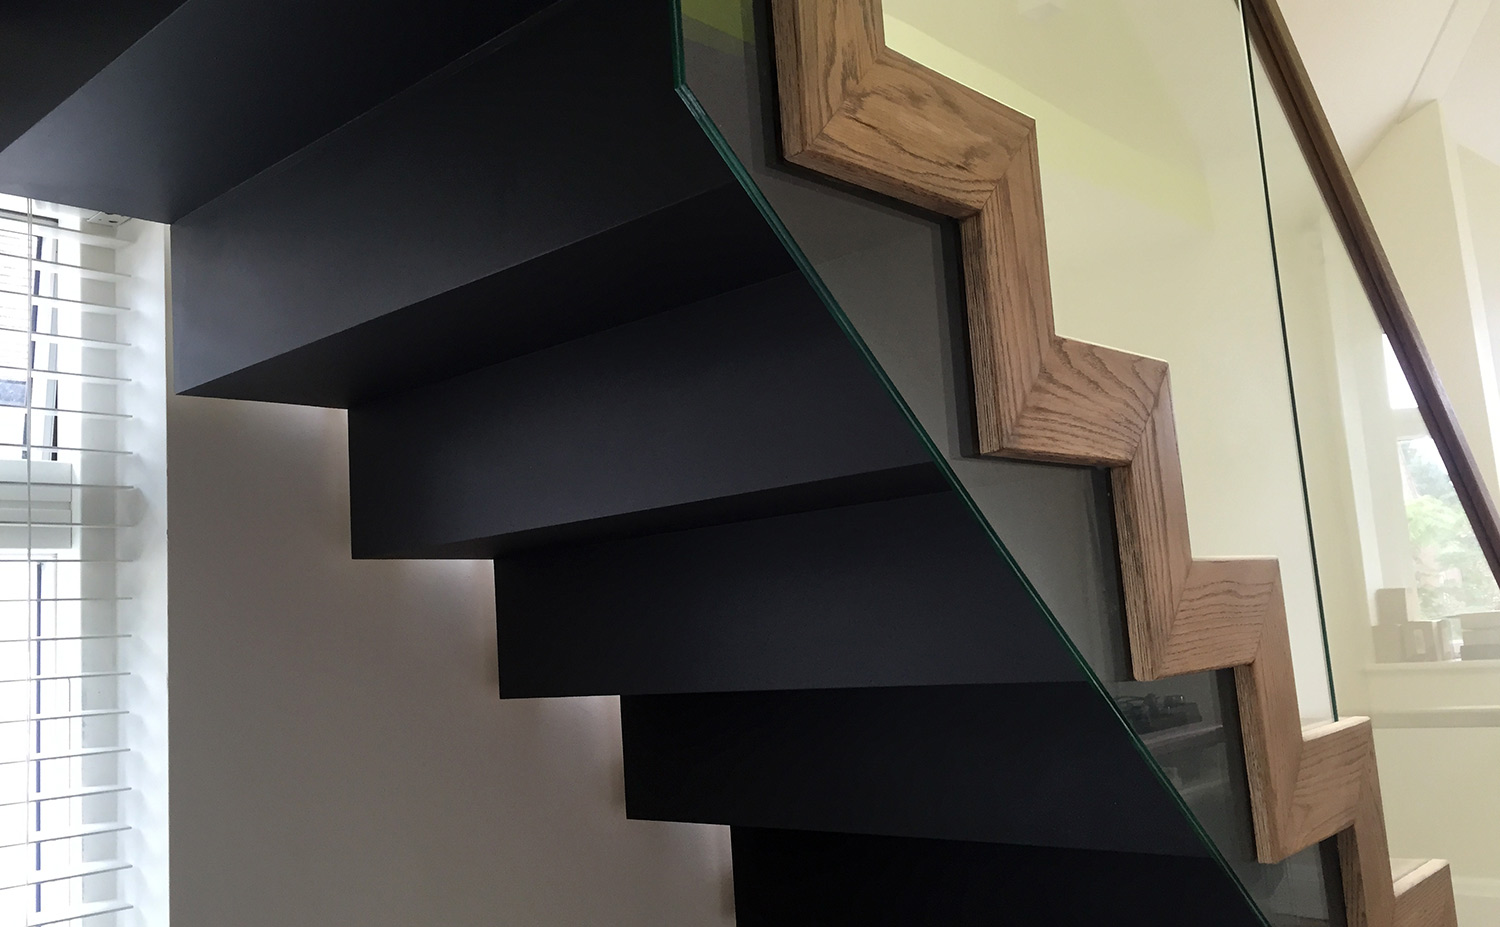 North Oxford: Zigzag Staircase